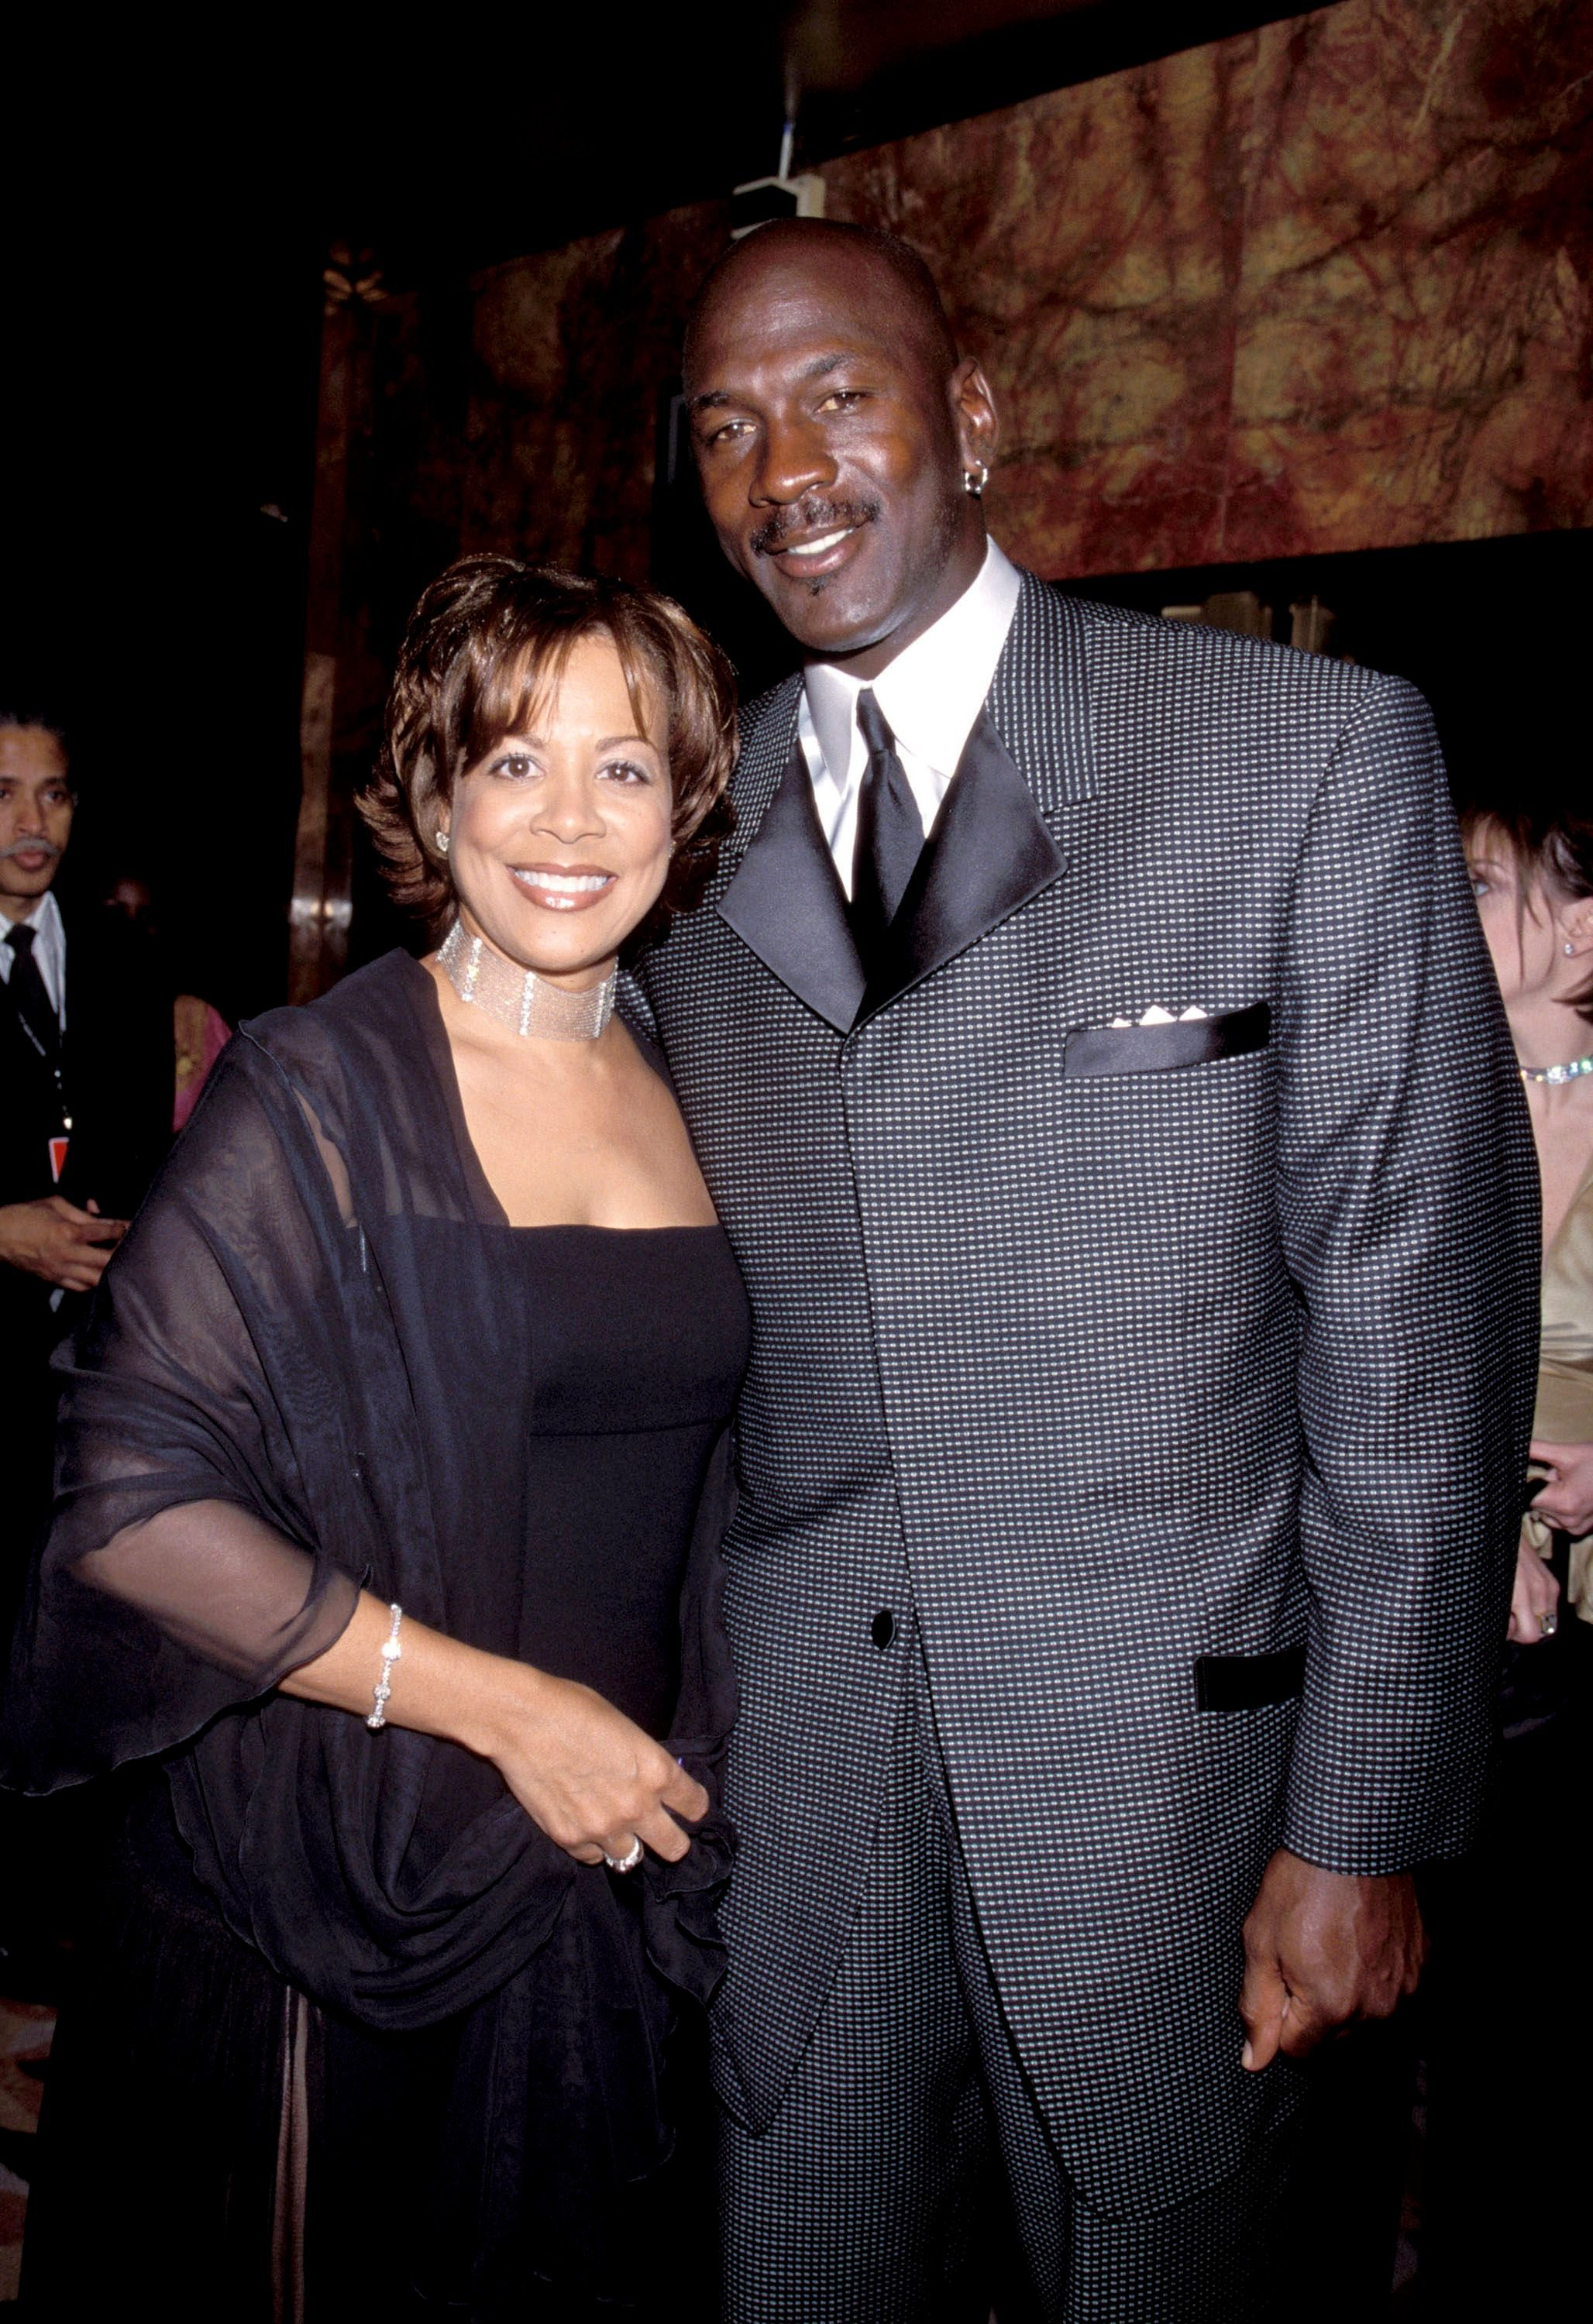 Michael Jordan (right) and Juanita Jordan at the Radio City Music Hall in New York City, New York (Photo by Kevin Mazur/WireImage)